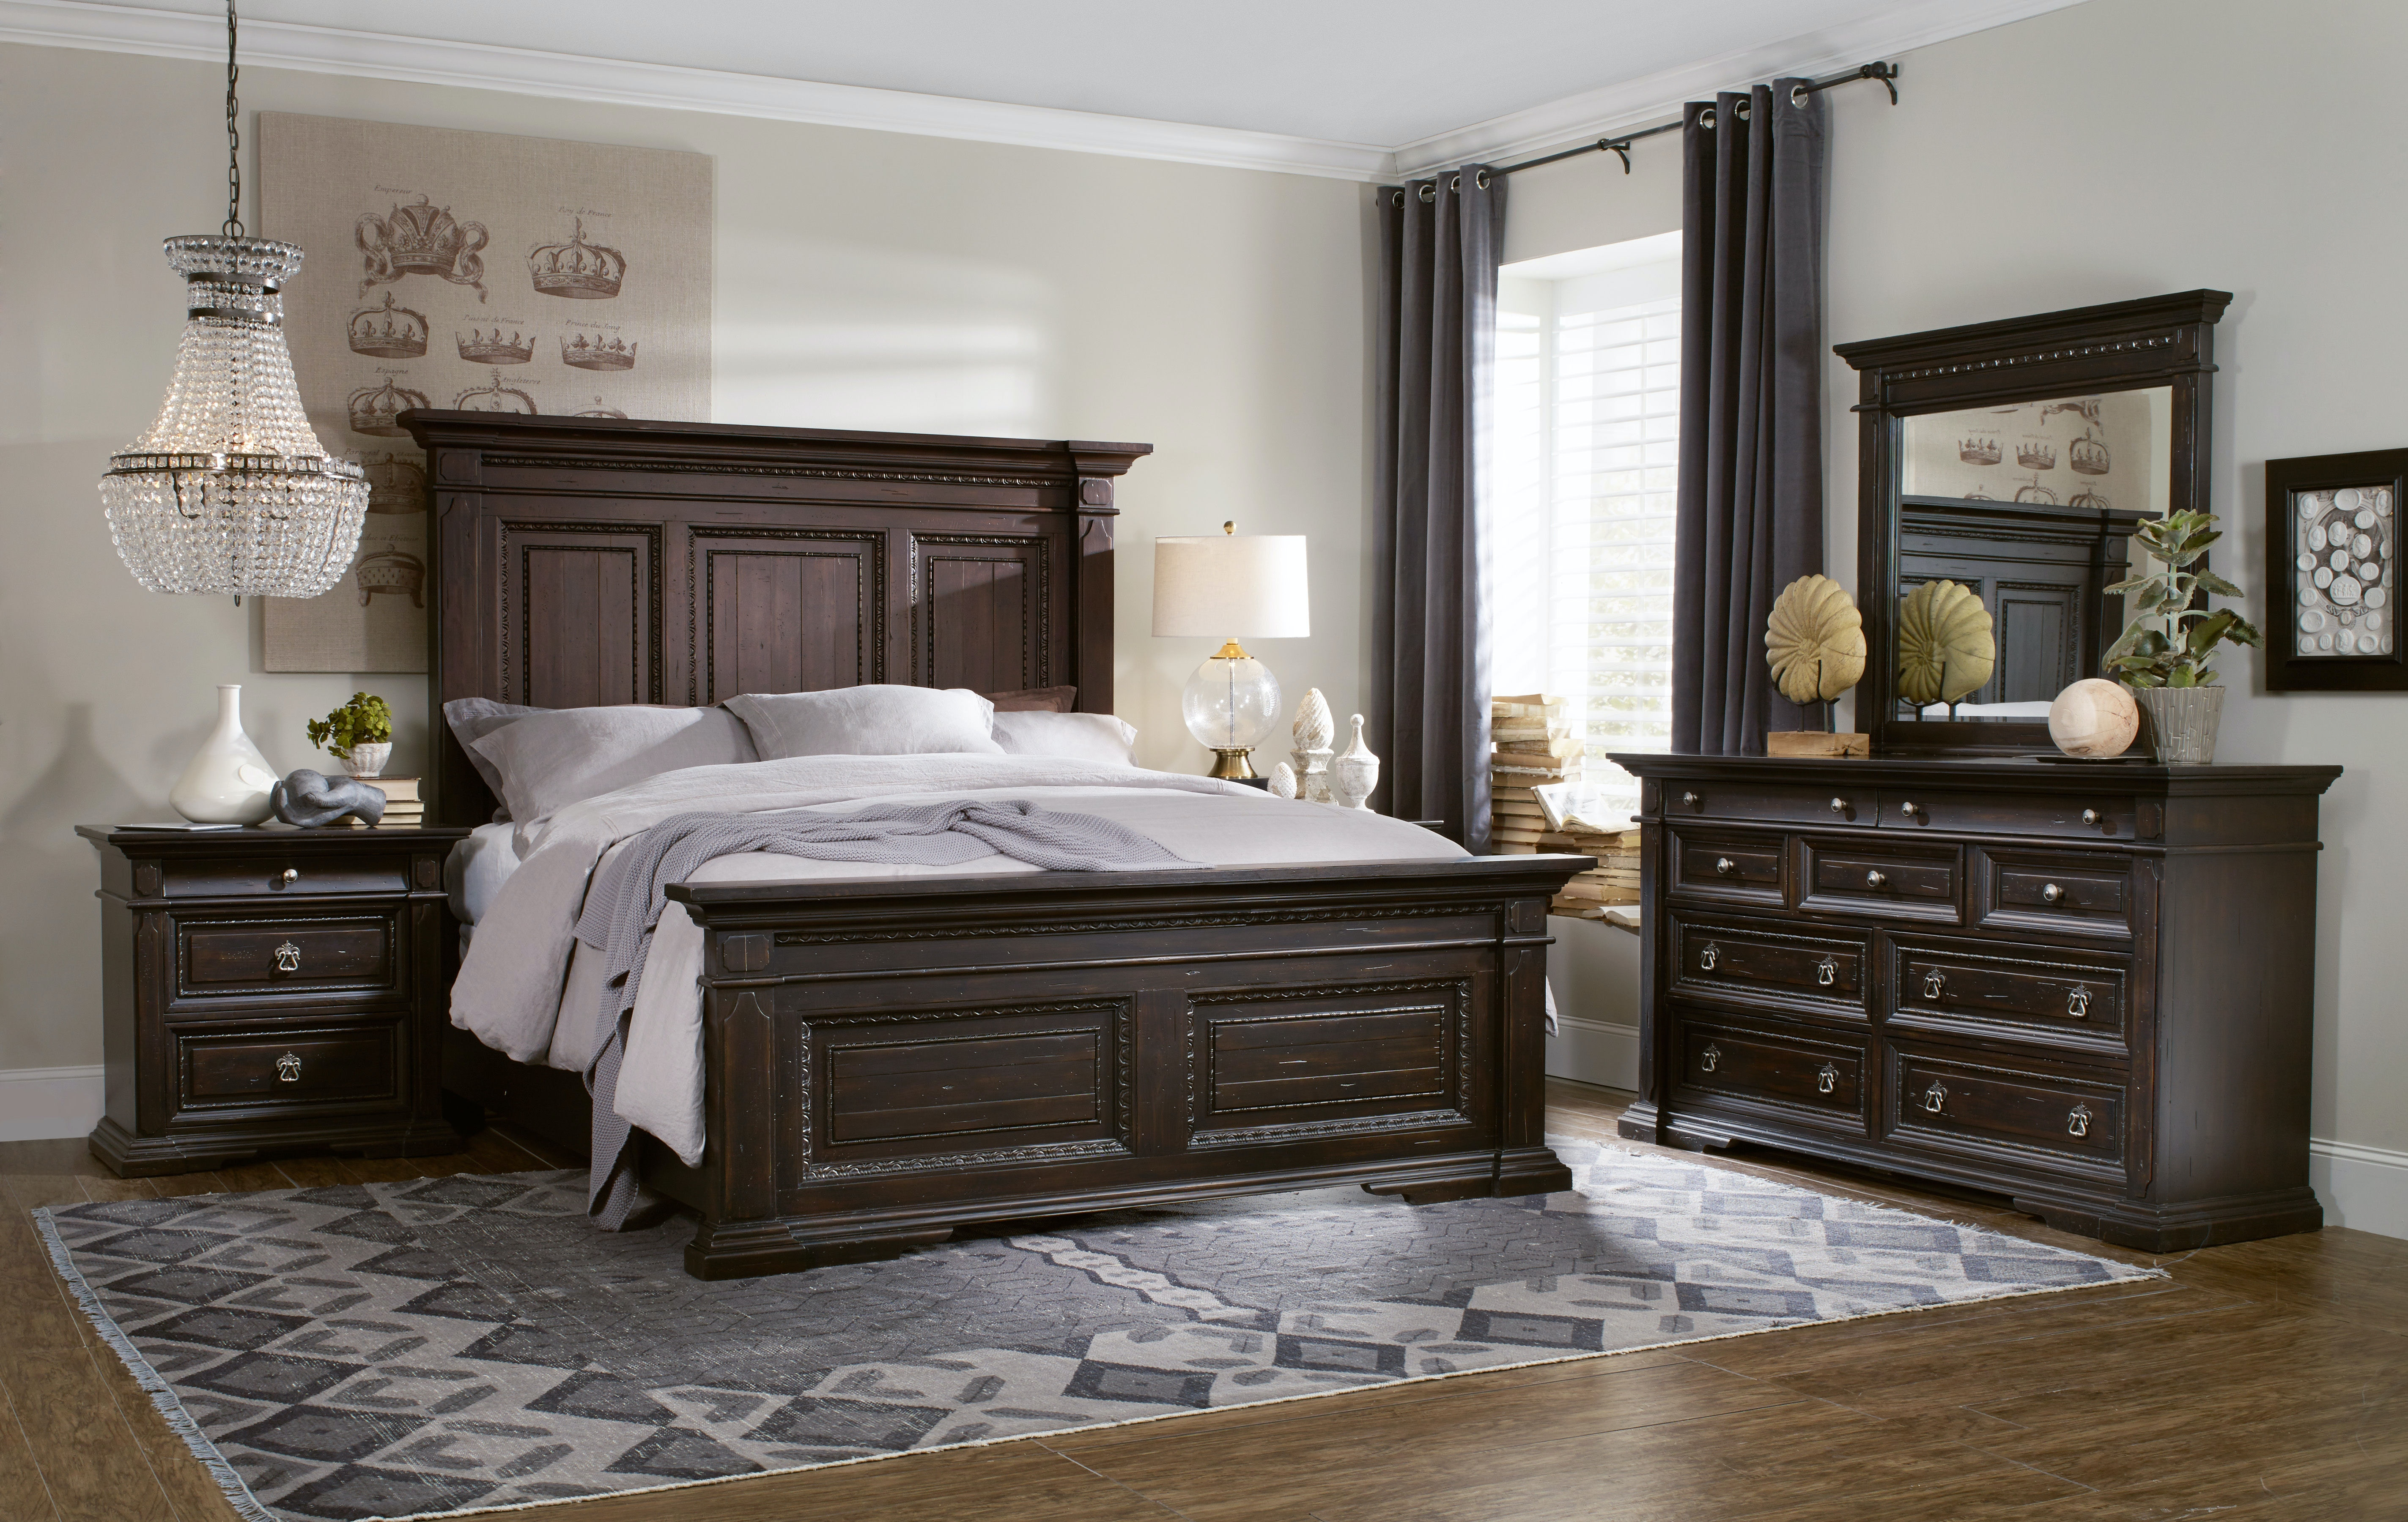 Hooker Furniture Bedroom Treviso King Panel Bed 5374-90266